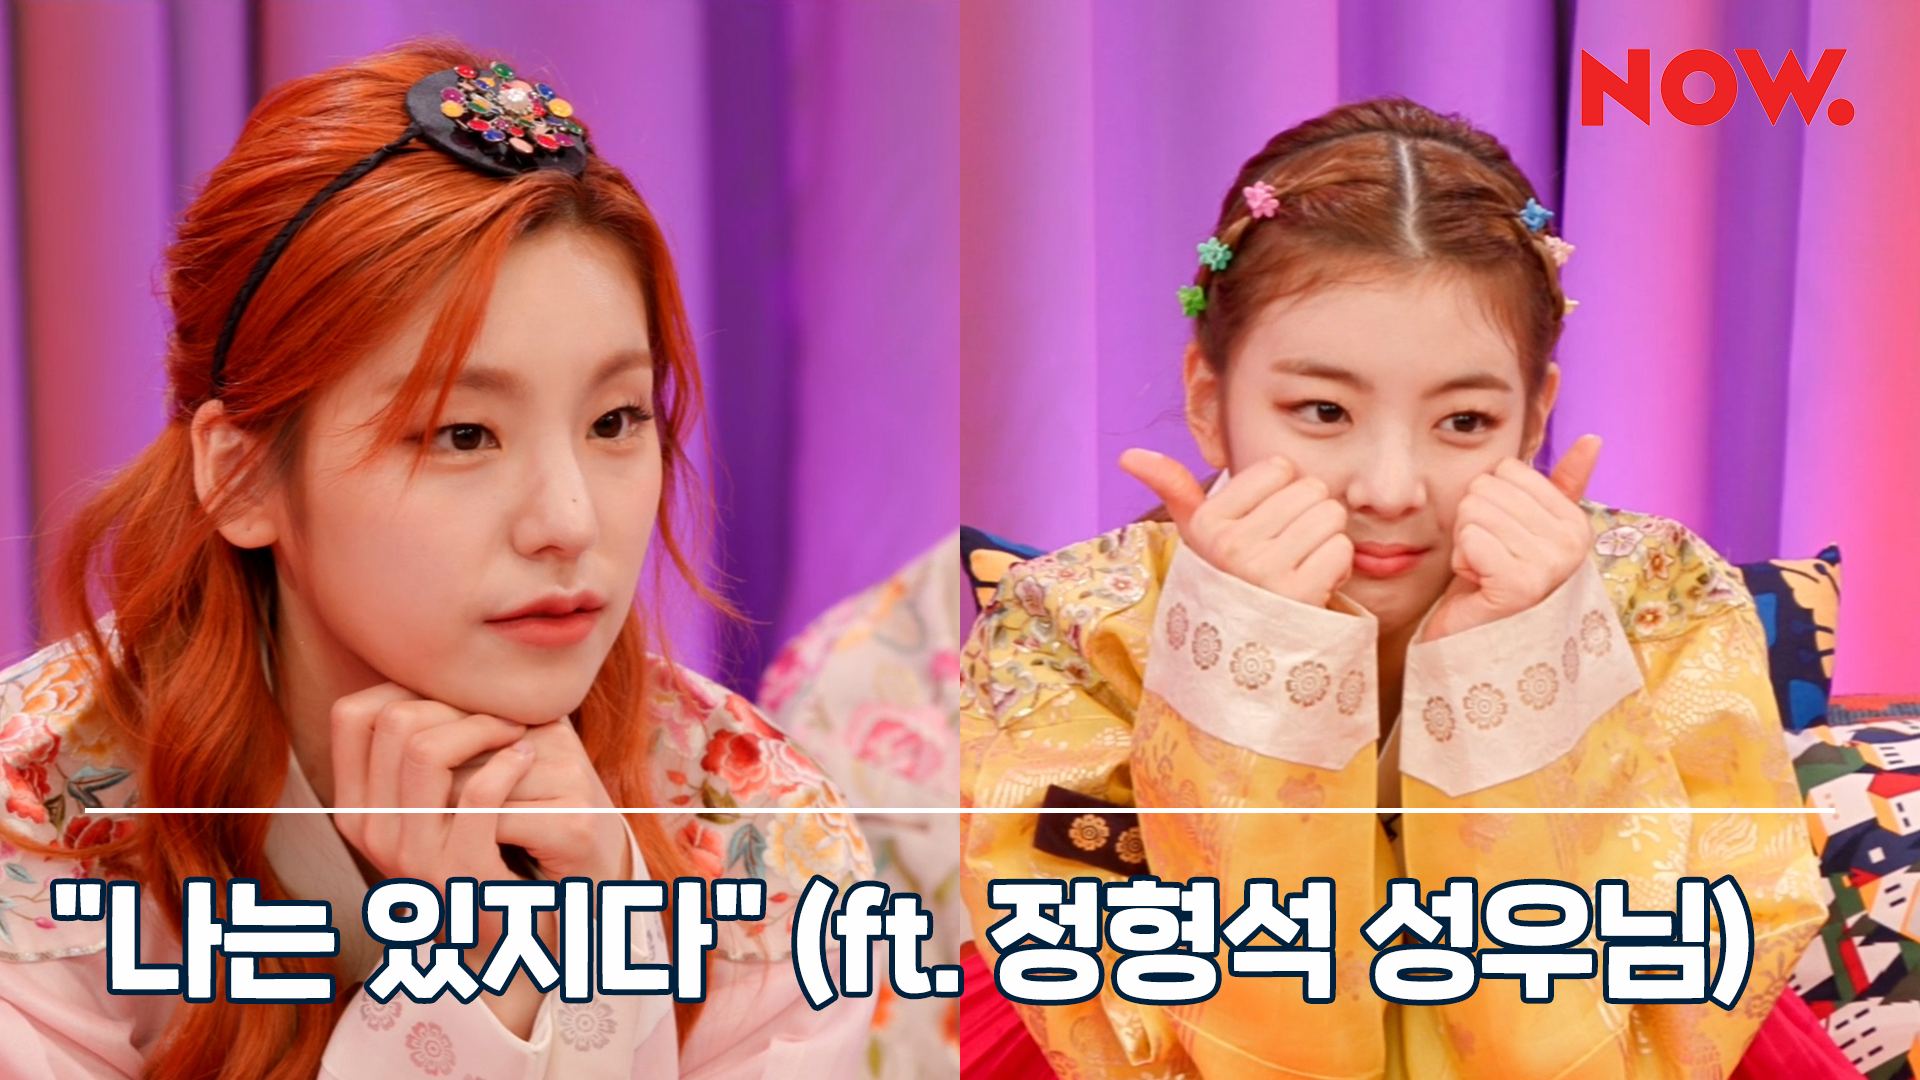 """ITZY(있지) """"bㅣㄴ틈있지"""" EP.07 Highlight : We are ITZY! (ft. voice actor)"""